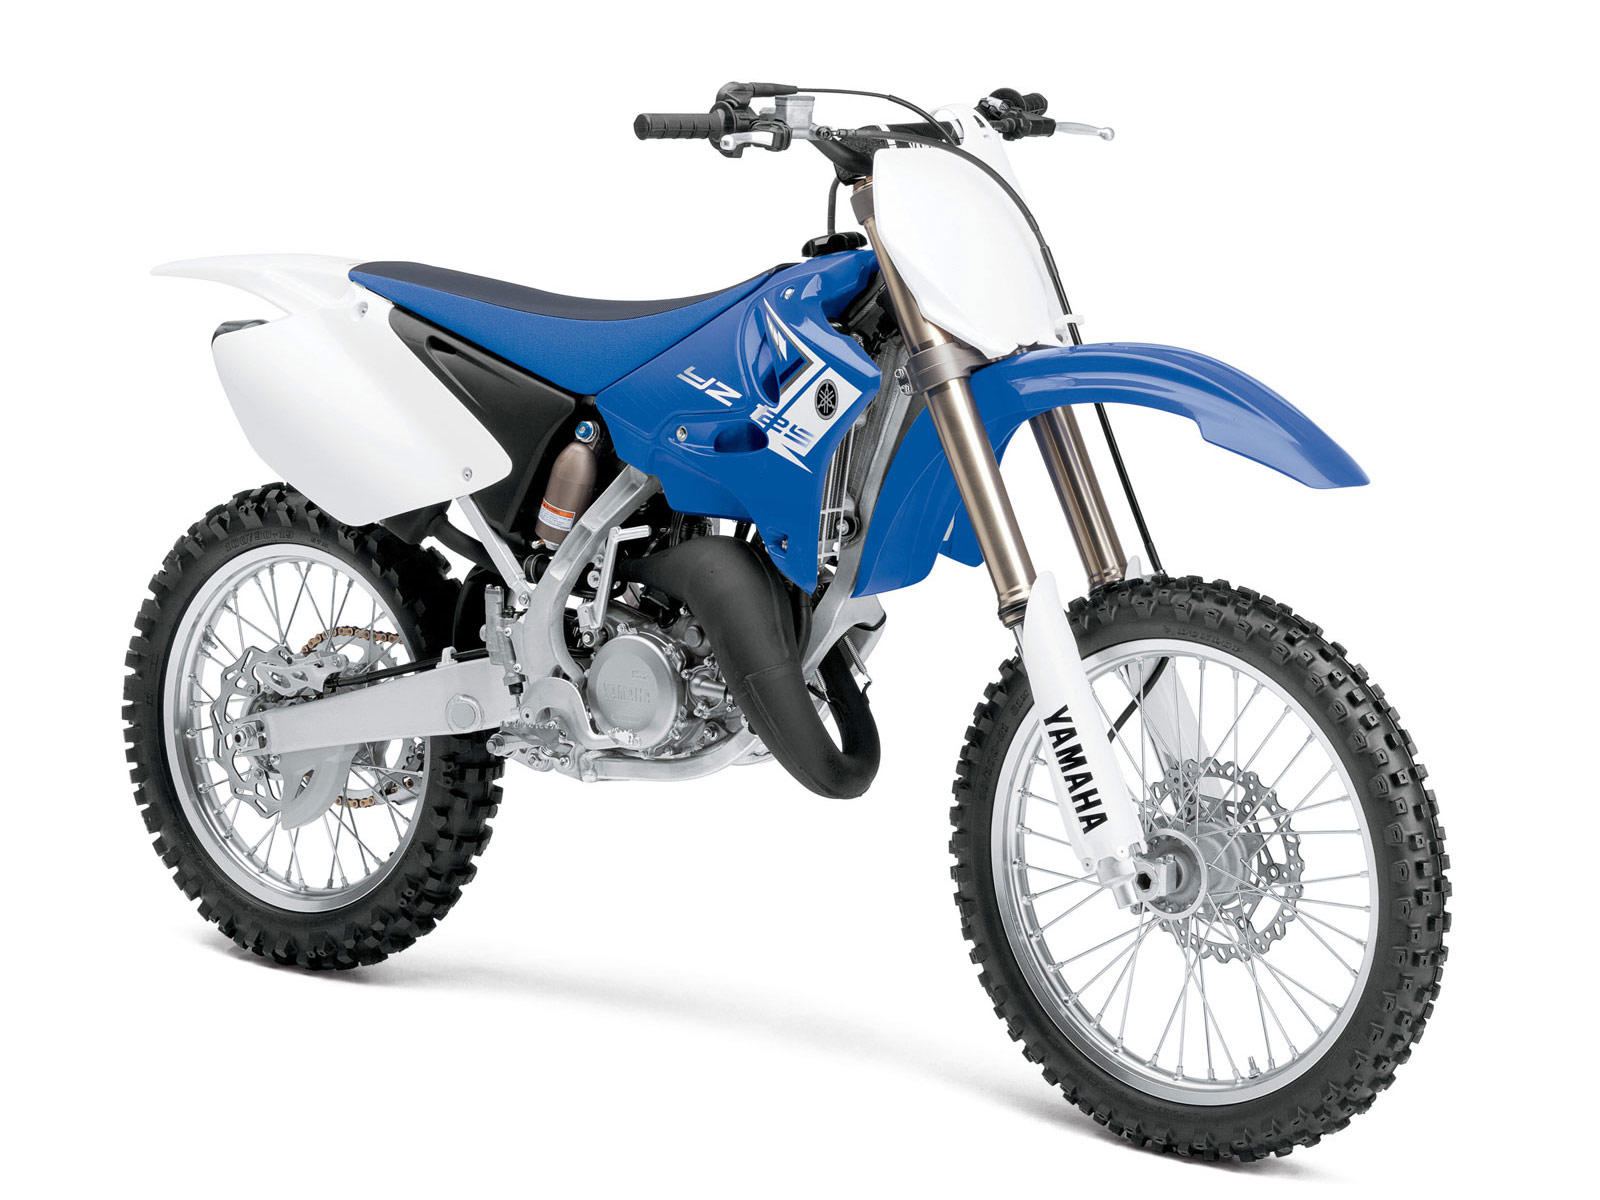 2013 yamaha yz125 2 stroke photos motorcycle insurance